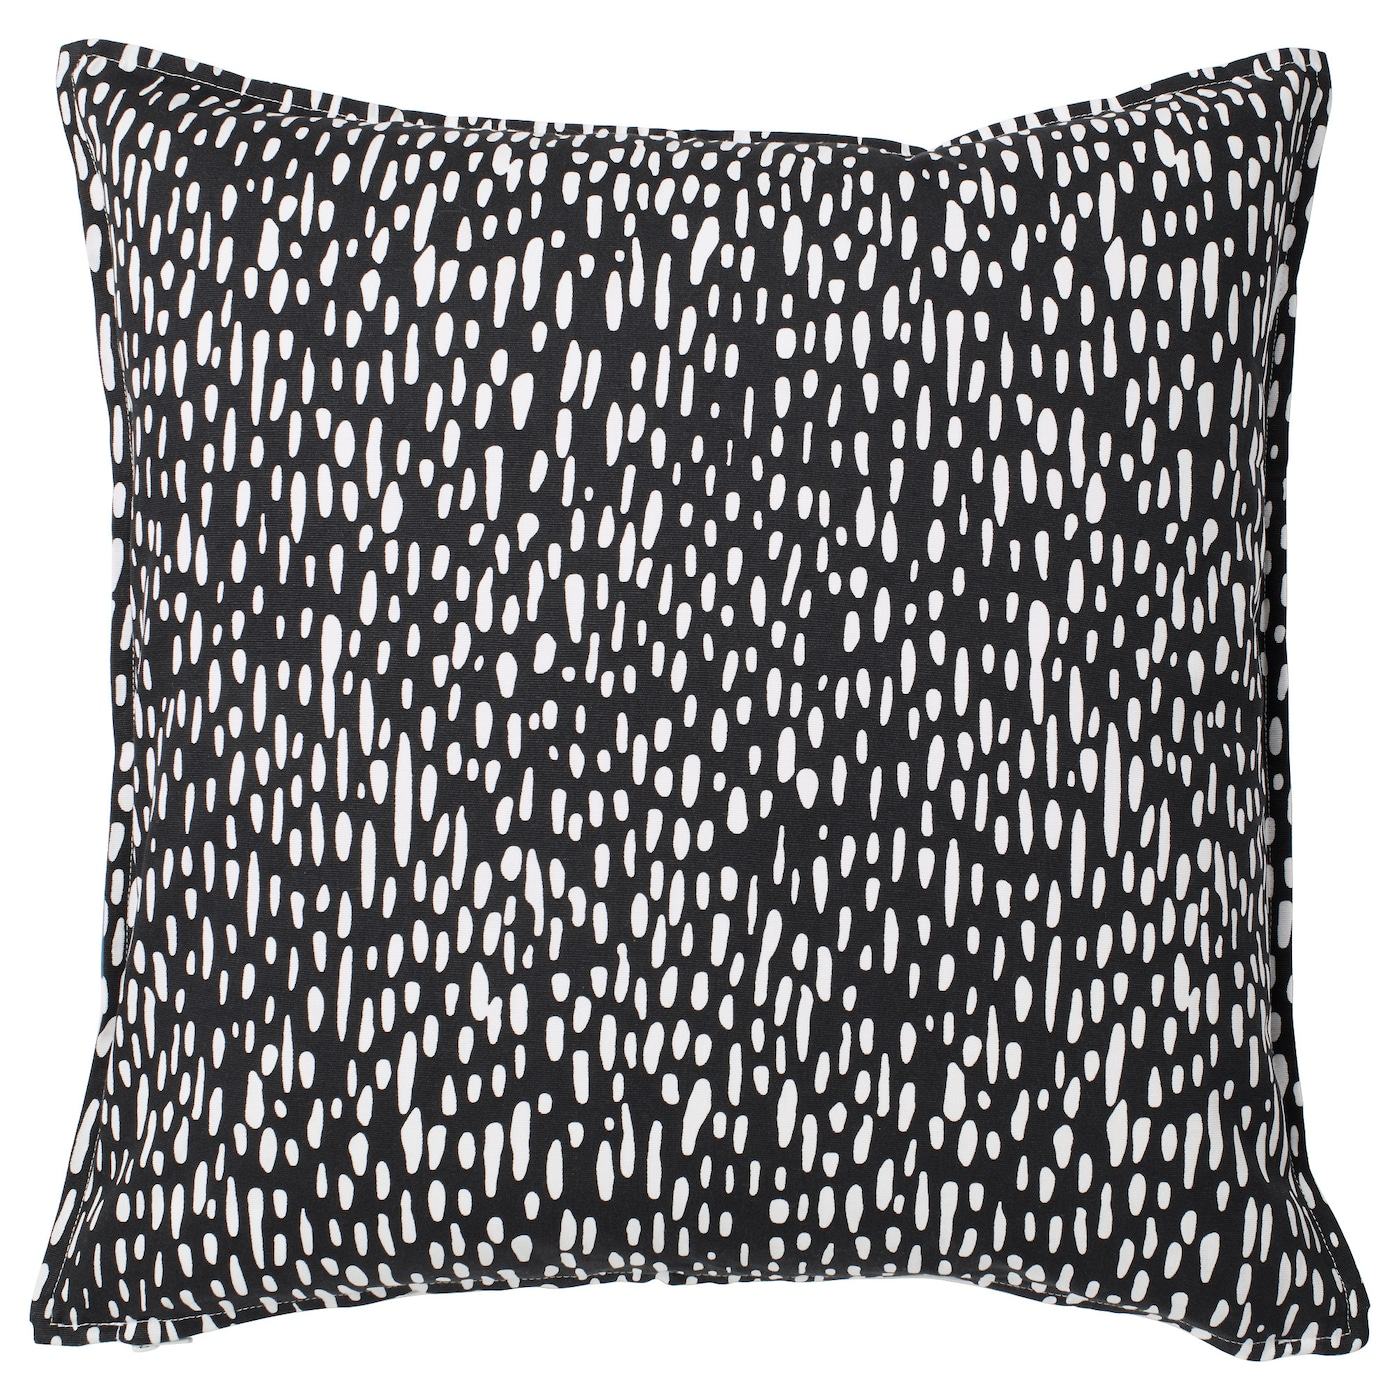 IKEA VINTER 2017 cushion cover The zipper makes the cover easy to remove.